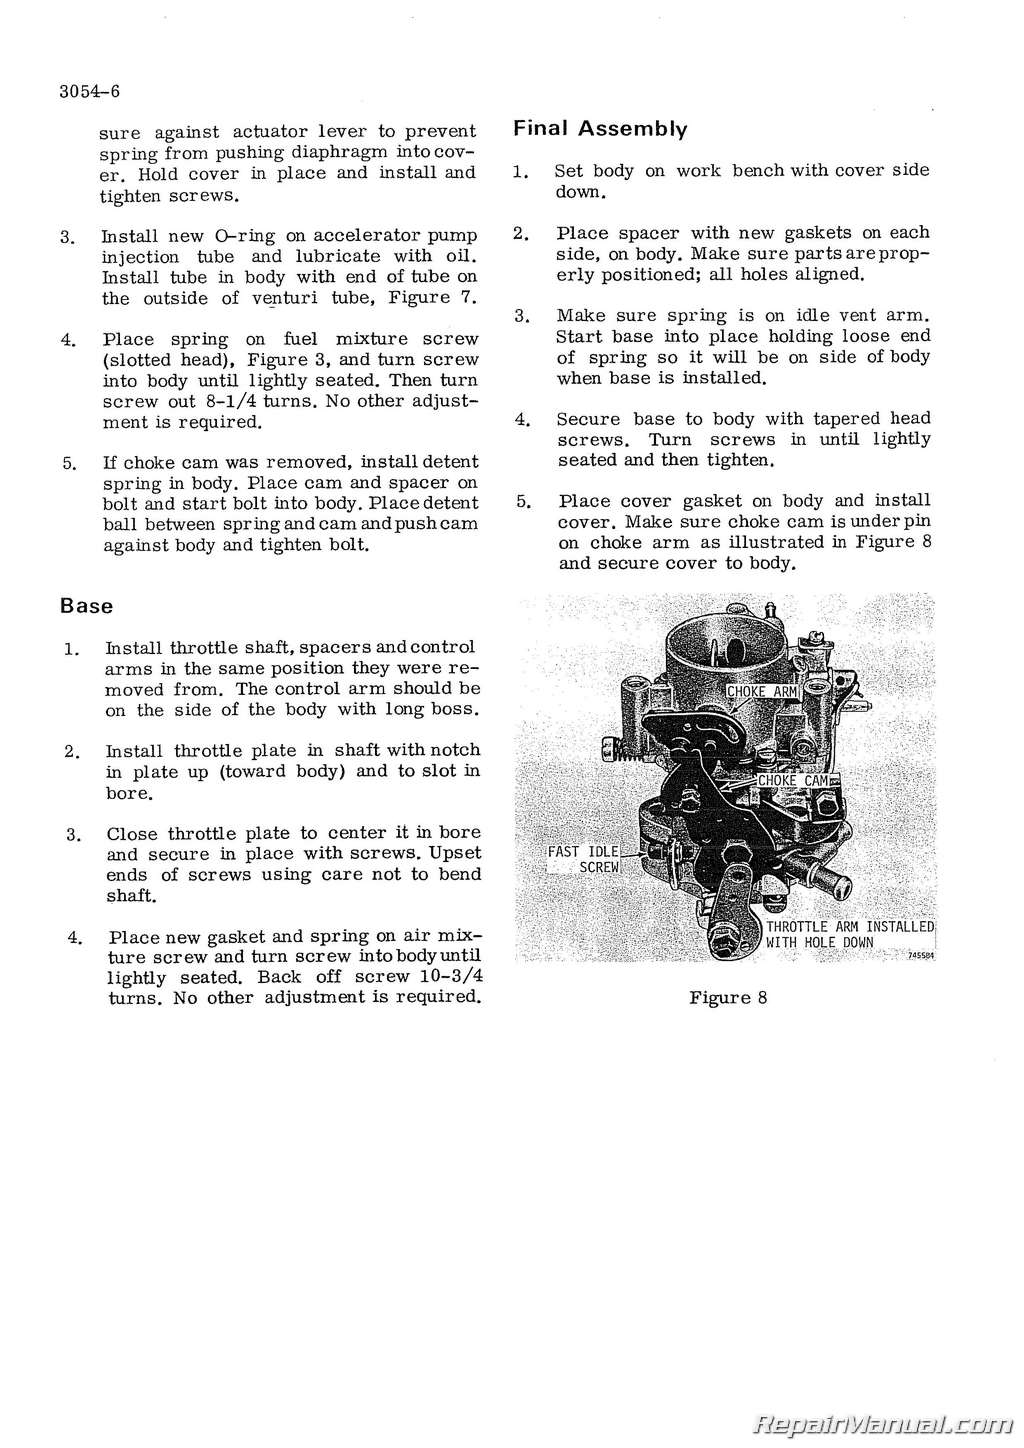 Case 1830 Wiring Diagram Diy Enthusiasts Wiring Diagrams \u2022 Ford 4600 Wiring  Schematic Case 444 Wiring Diagram